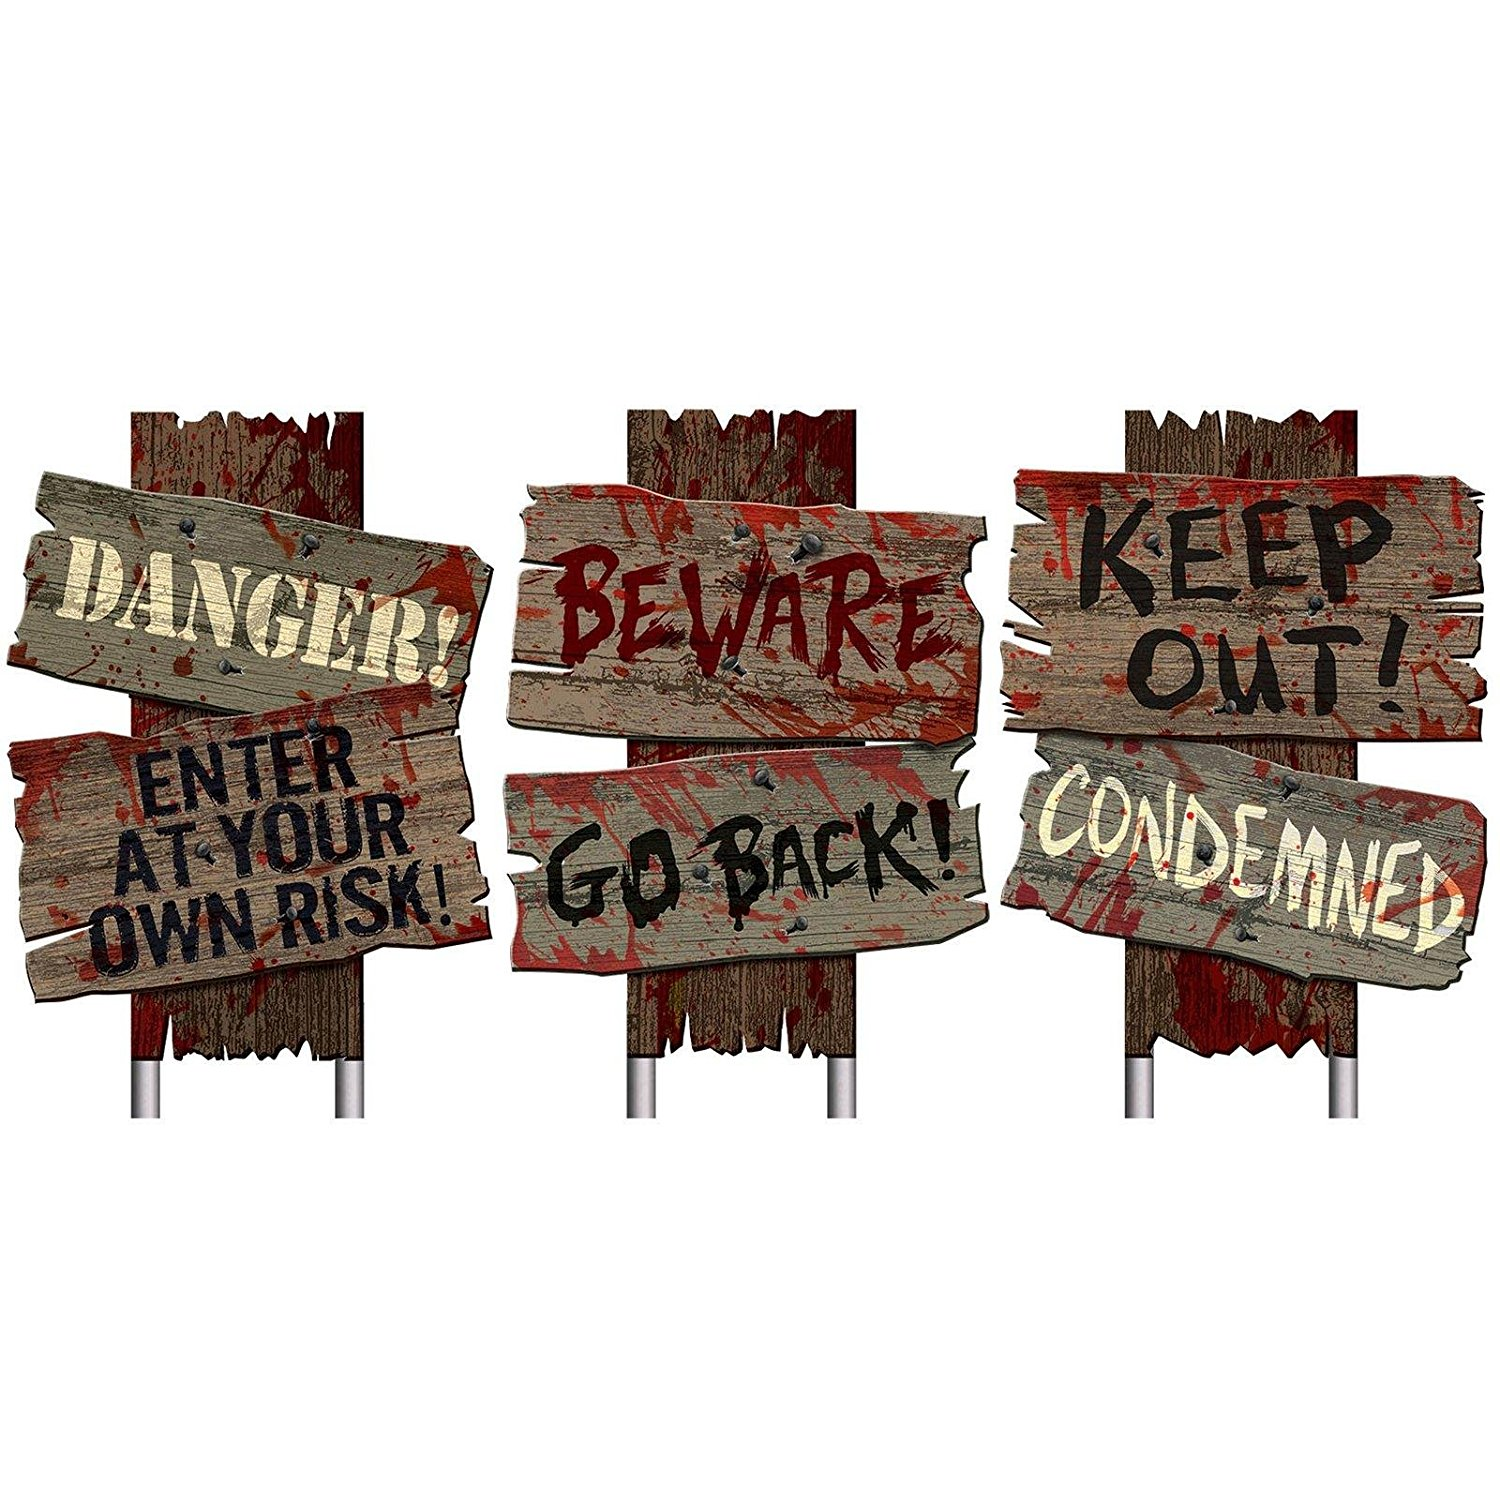 Set of 3 Halloween Cemetery Sidewalk Signs Danger Keep Out Beware